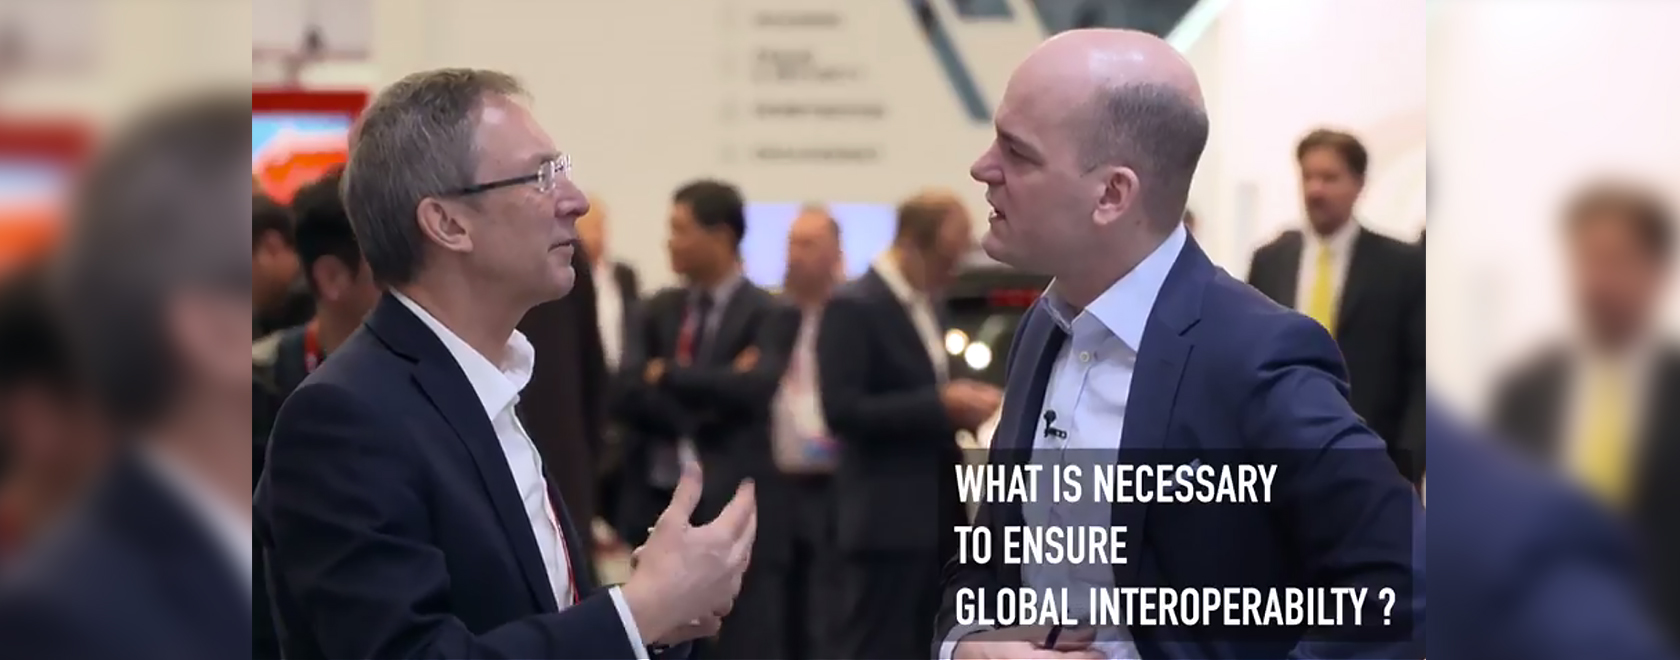 What is Necessary to Ensure Global Interoperability in the IoT?